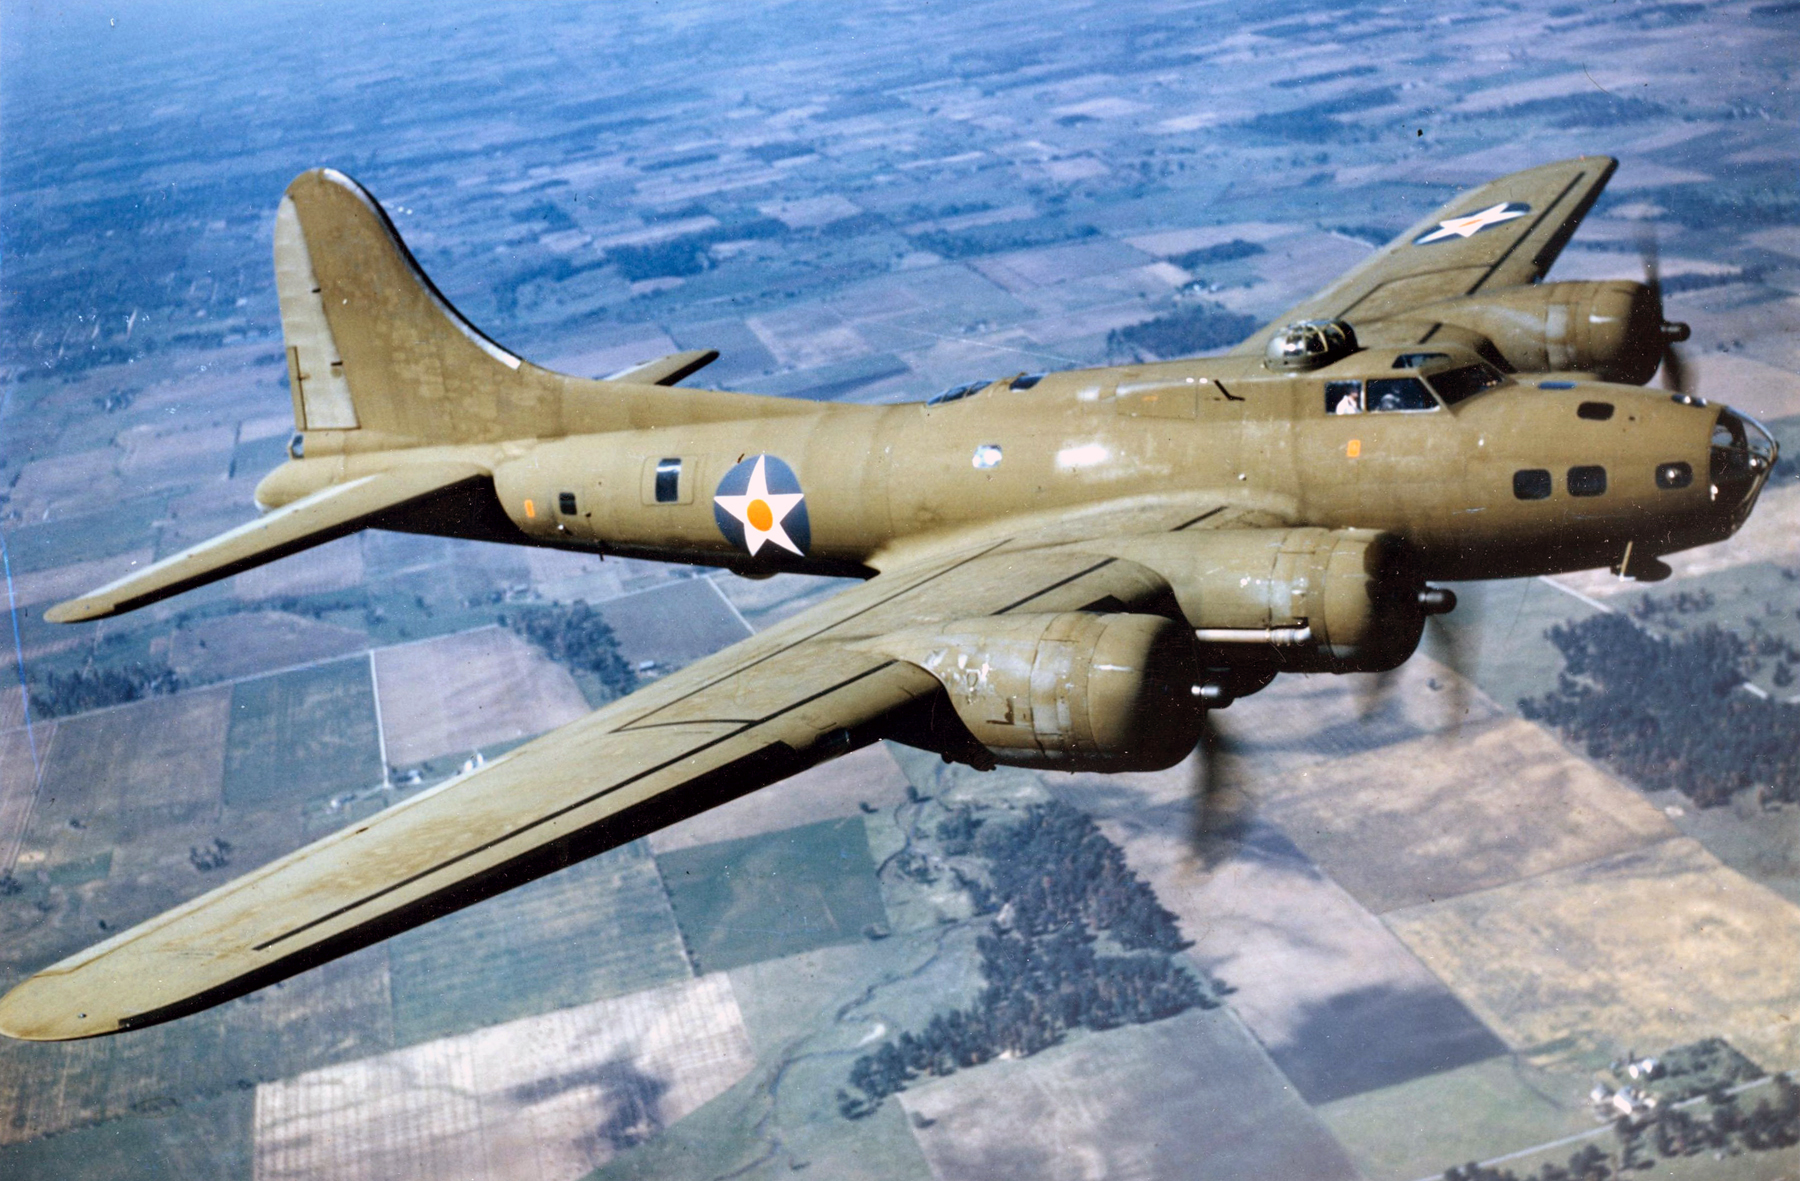 Militär - Boeing B-17 Flying Fortress  - Spitfire - Flugzeug - P-38 - Us - Air Force - B-17 Hintergrundbild